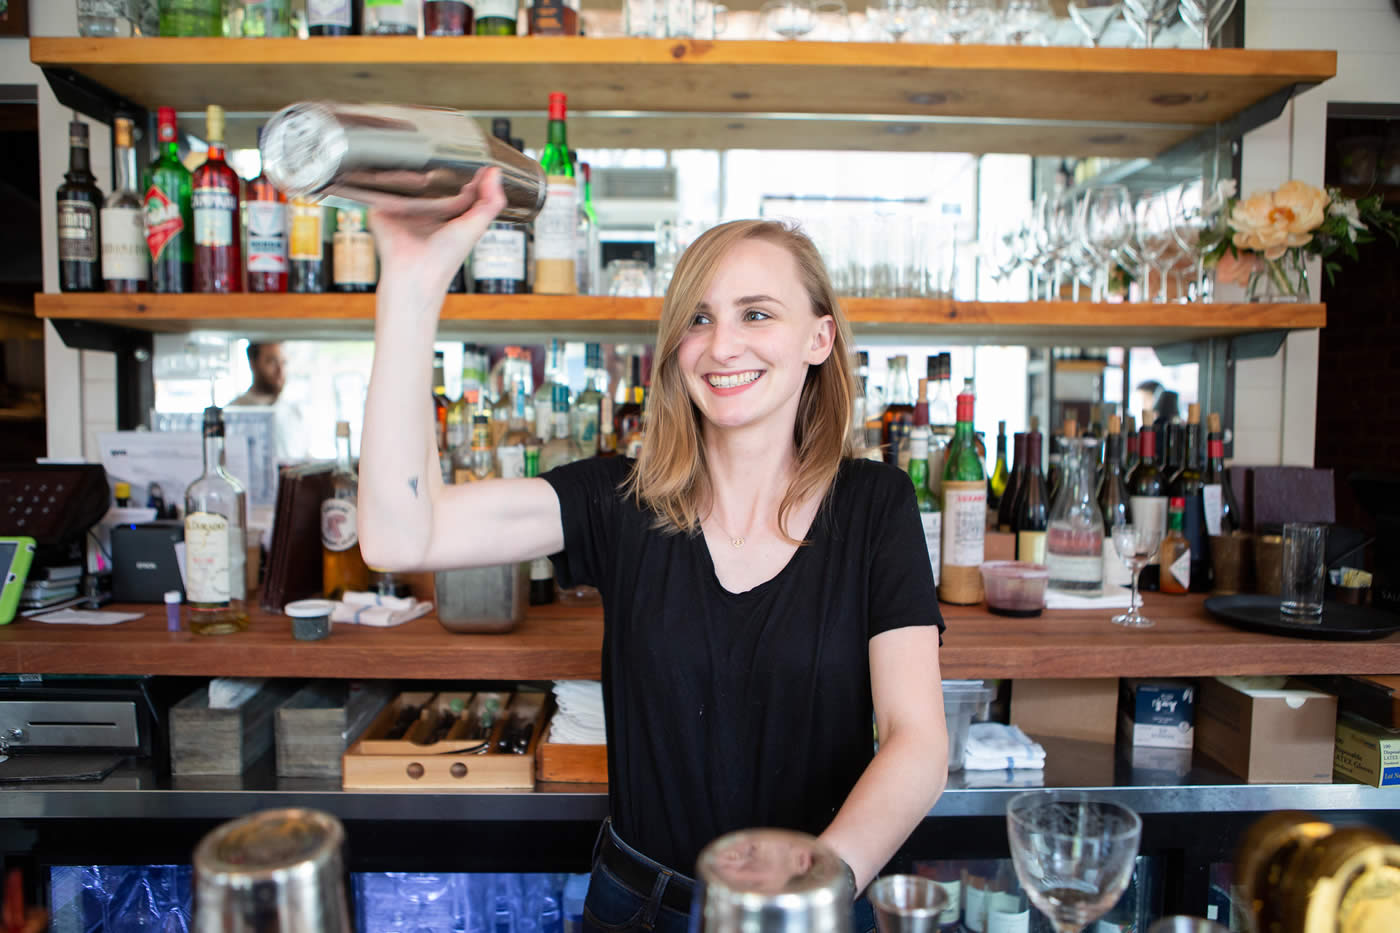 Female bartender shaking up a cocktail behind the bar with a big smile.